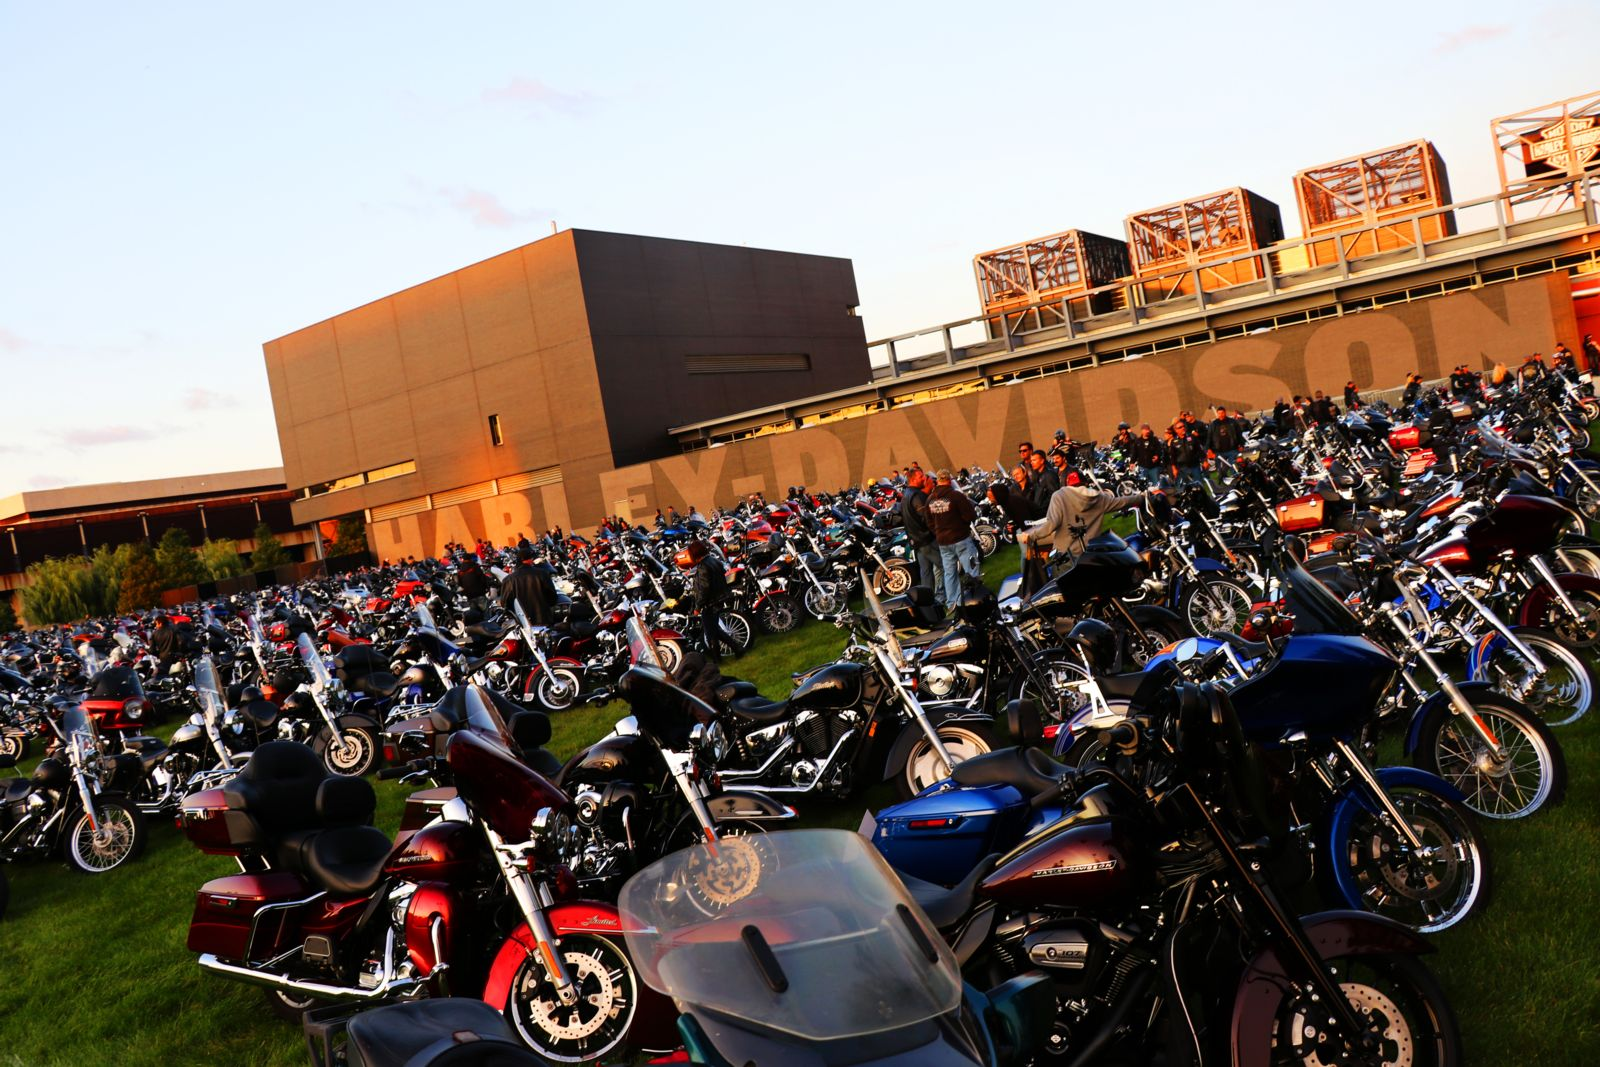 Hundreds of bikes lined up for Milwaukee Rally